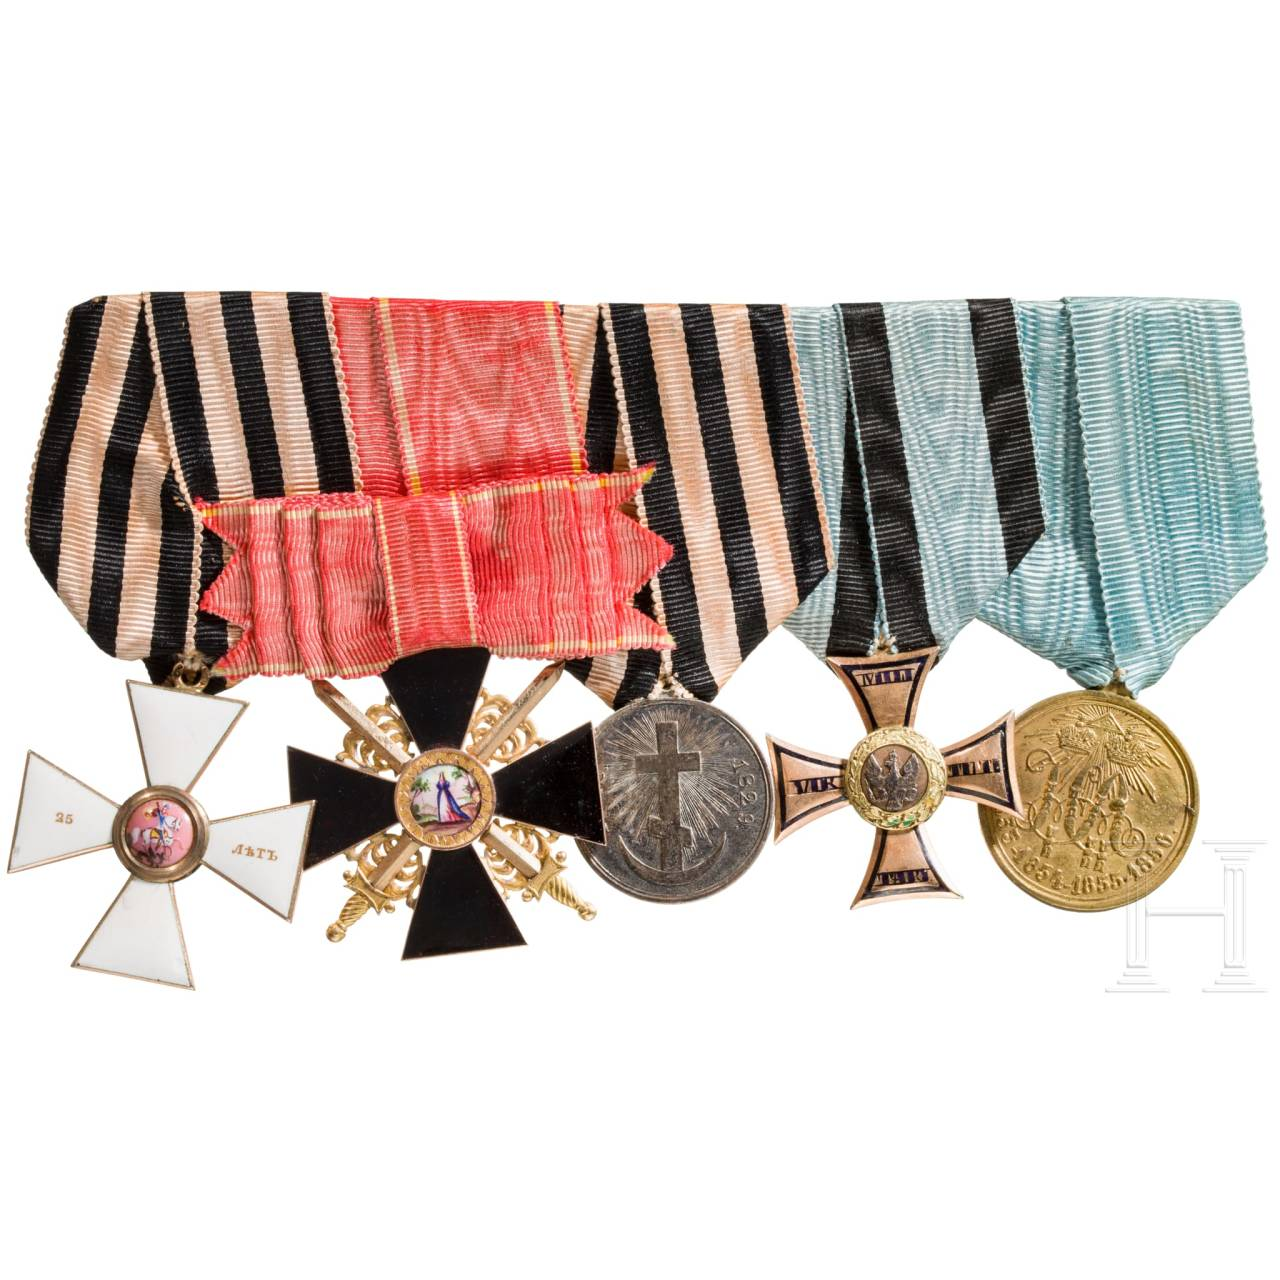 A rare Russian medal bar with Order of St. George, cross 4th class for 25 years of service, Order of St. Anna, cross 3rd class with Swords, Order of Virtuti Militari, cross 4th class, mid-19th century